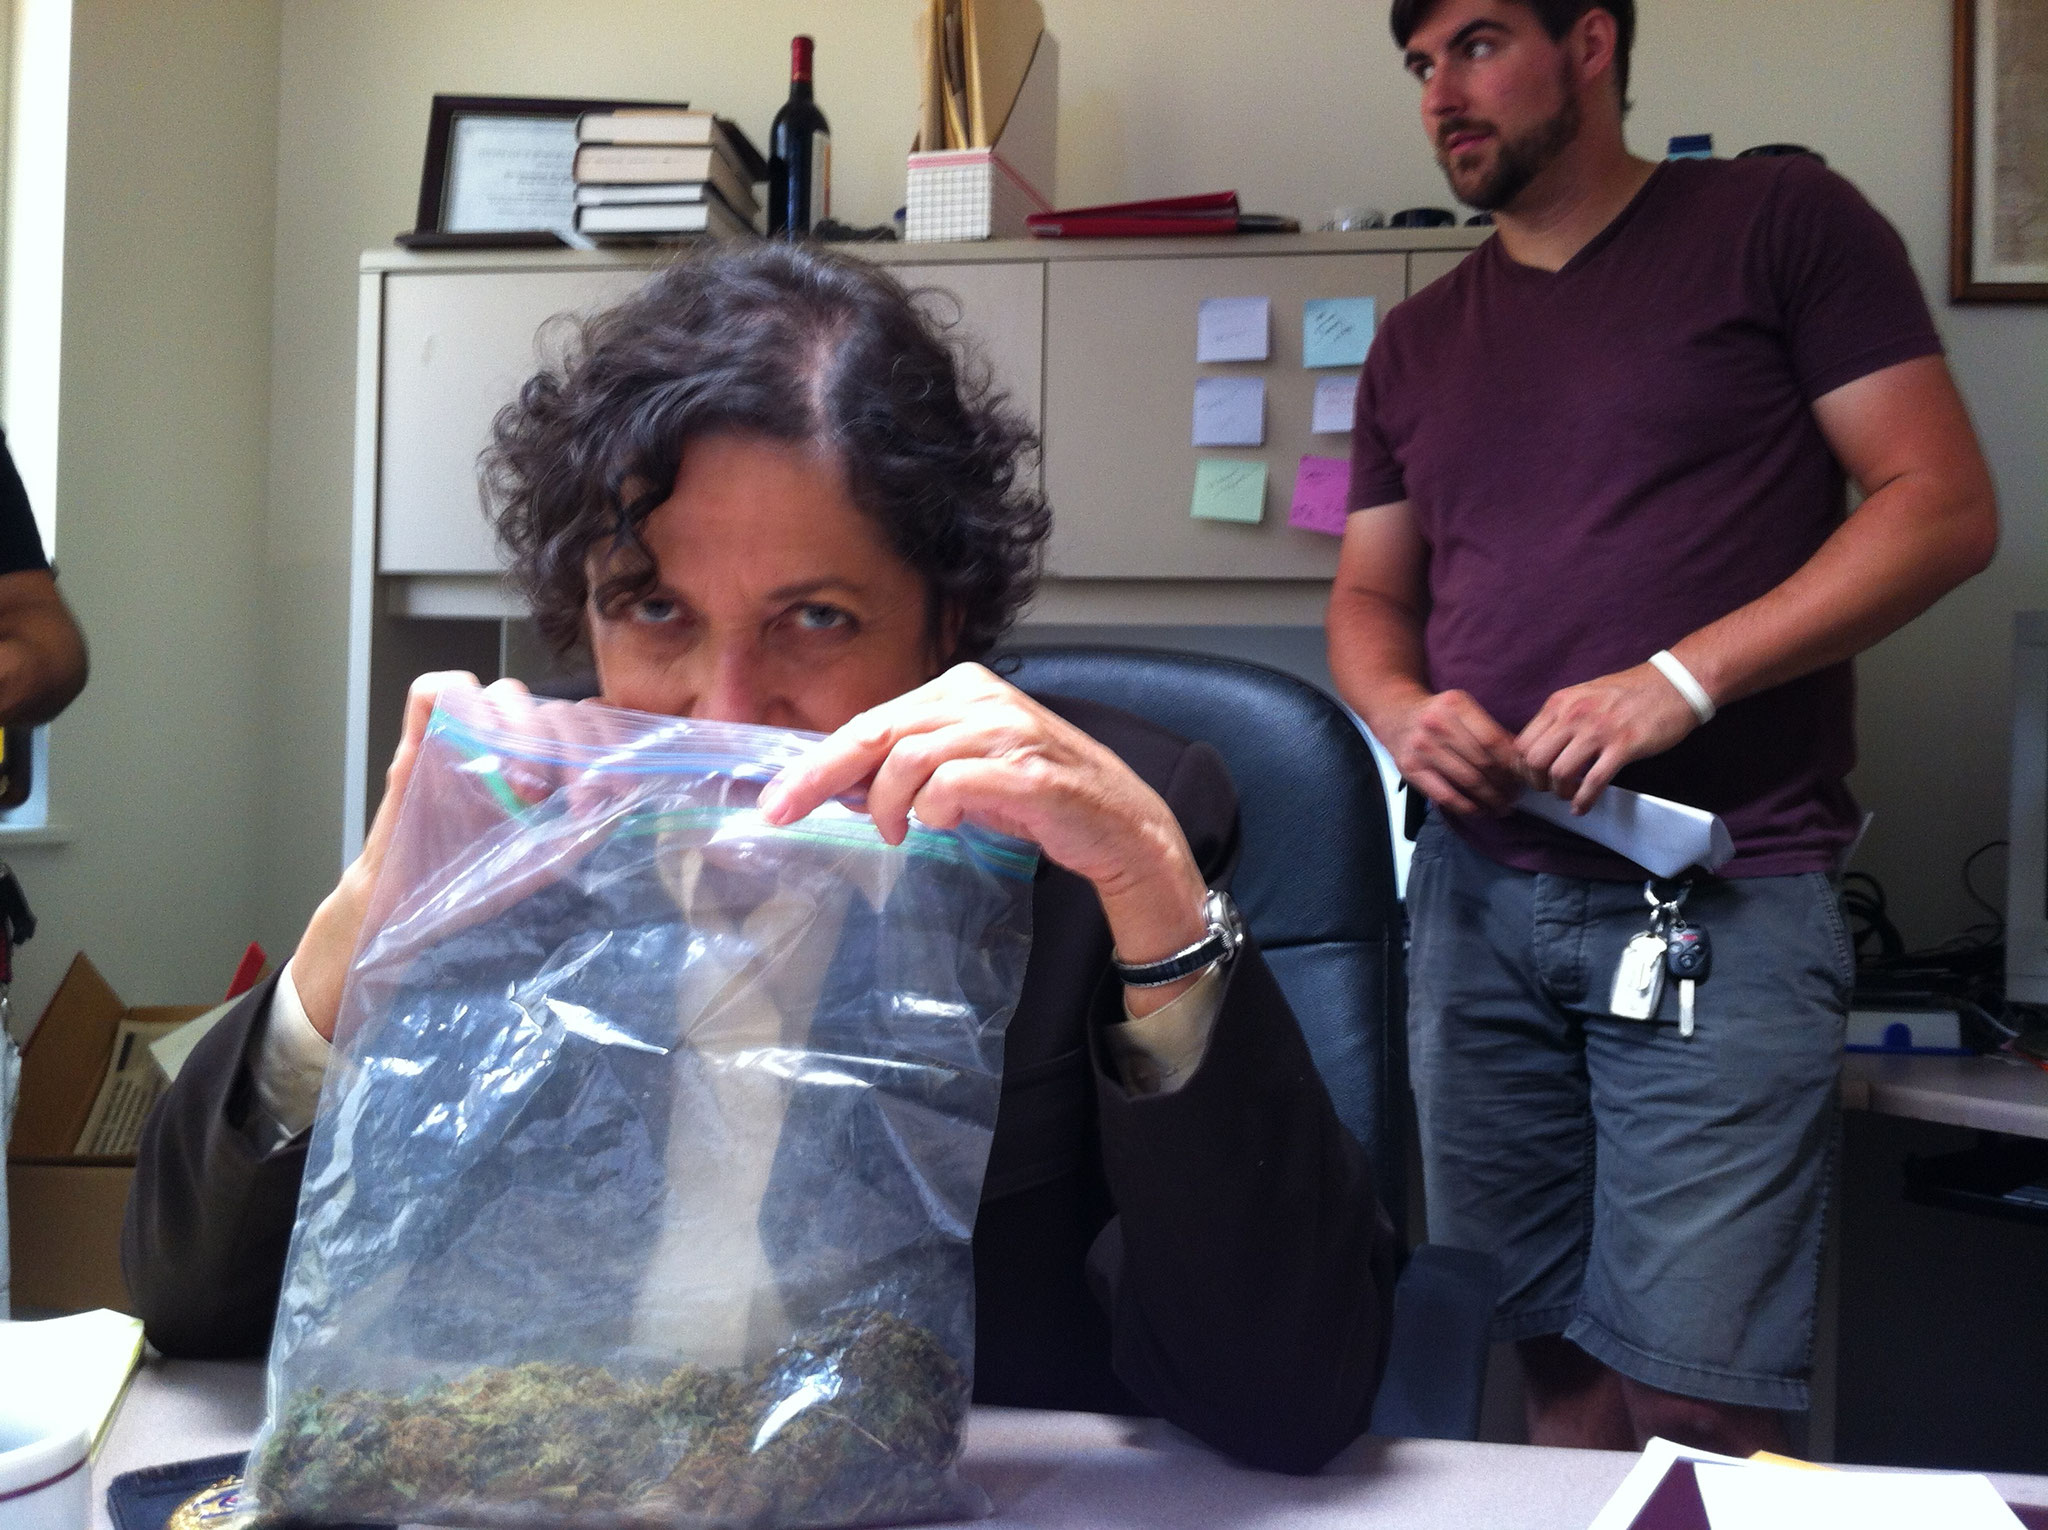 Director Les (Joette Waters) smellin' the goods in her office as the crew sets up a shot.